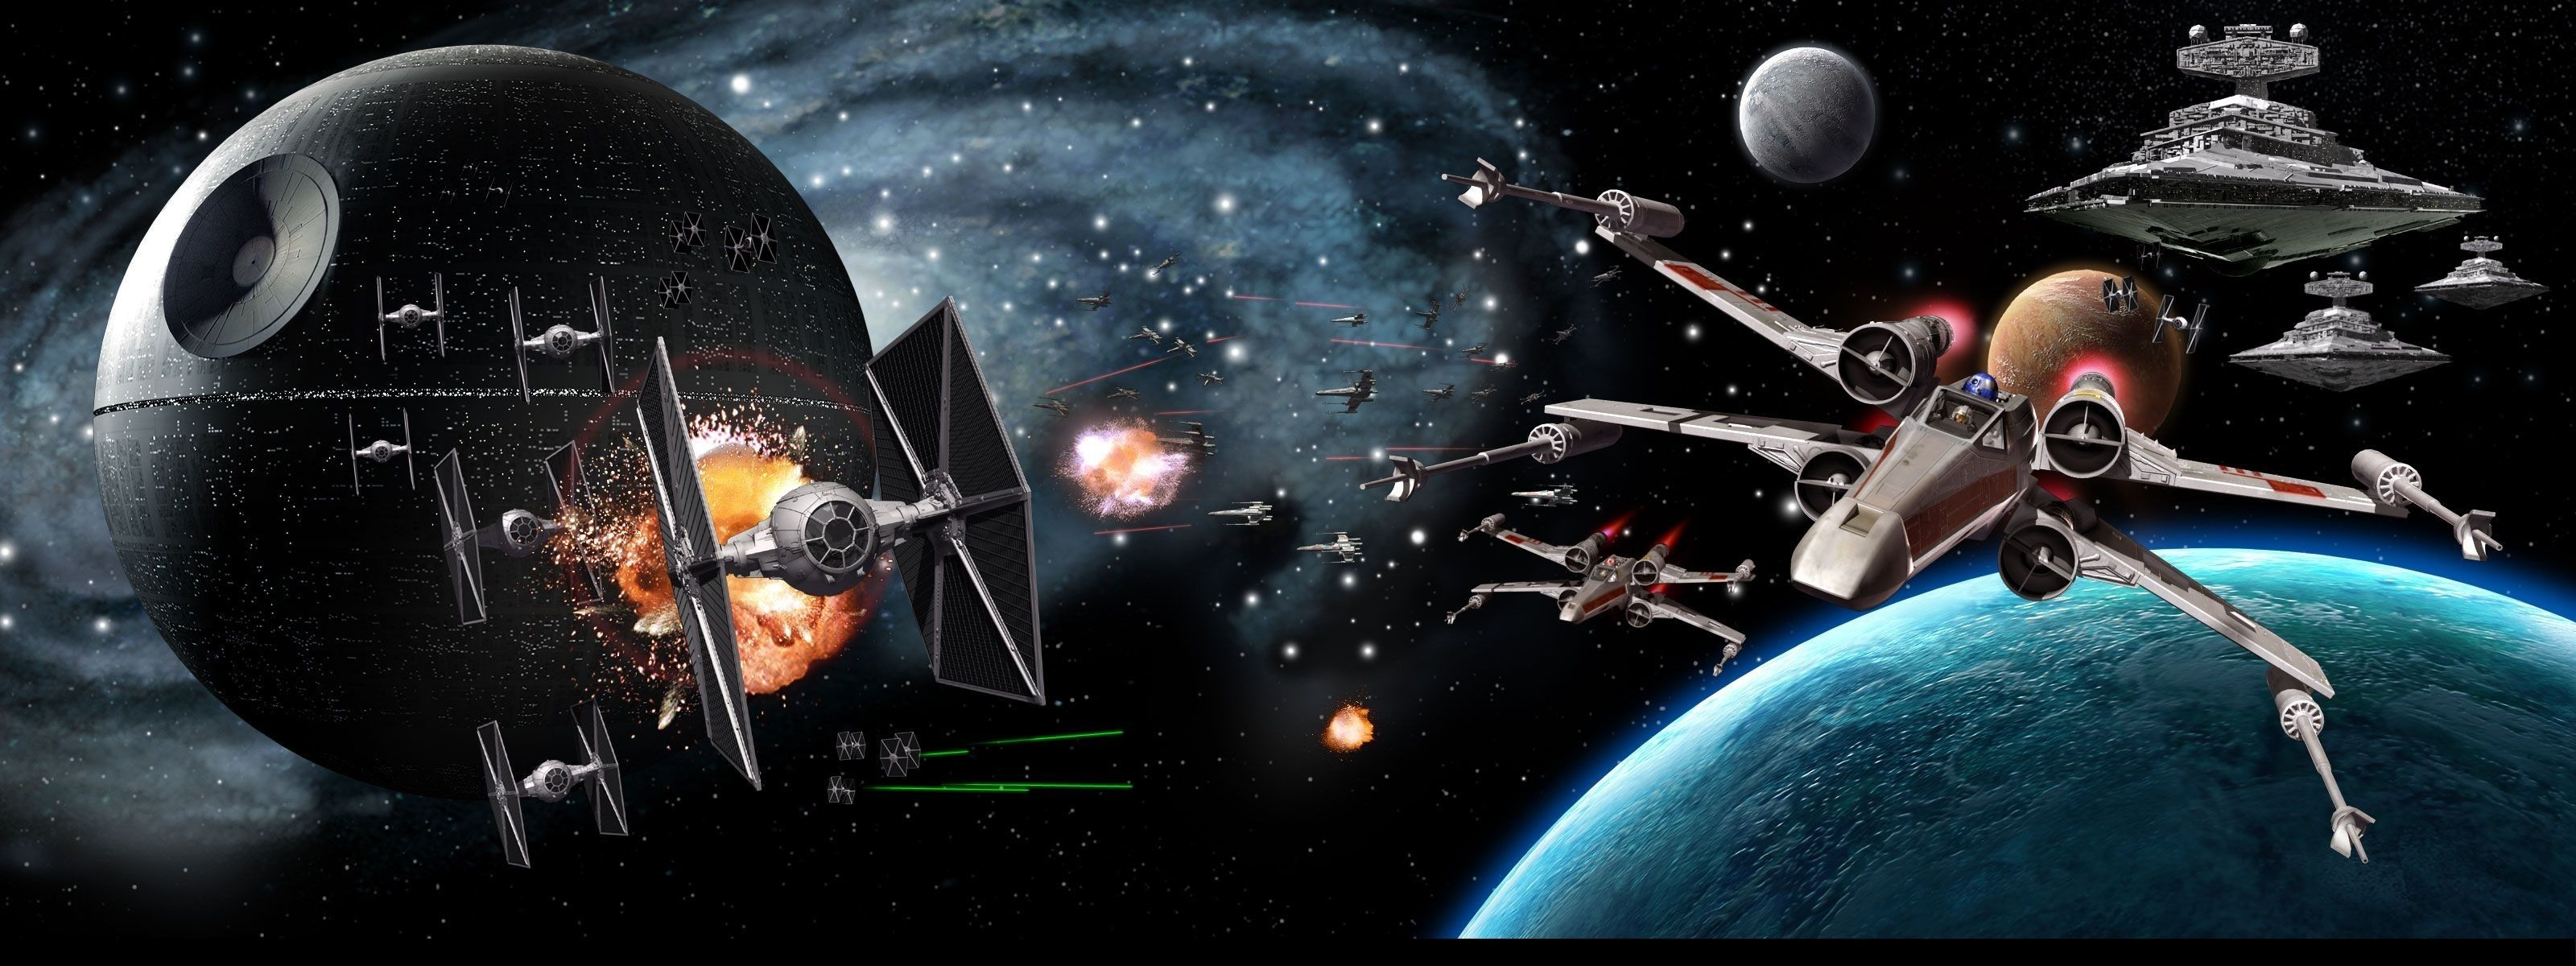 10 Top Star Wars Triple Monitor Wallpaper Full Hd 1080p For Pc Background Star Wars Wallpaper Star Wars Awesome Dual Monitor Wallpaper